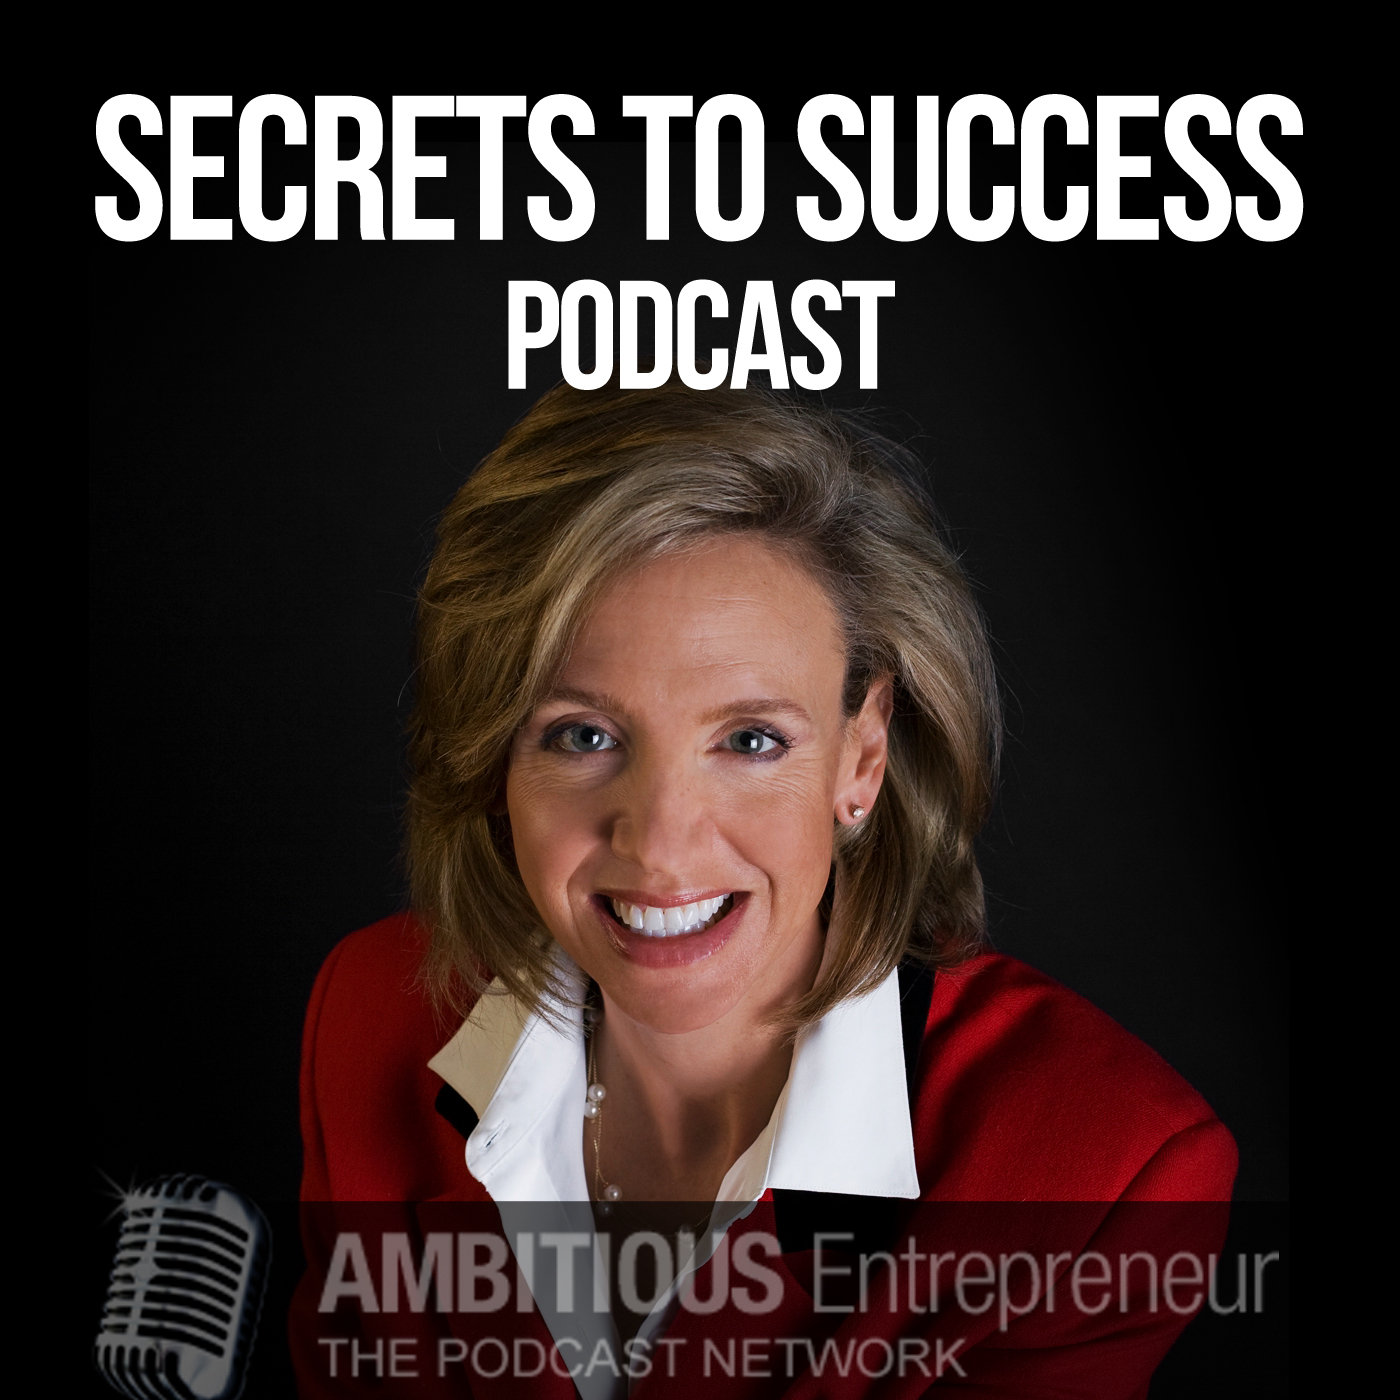 Secrets to Success Podcast - Meridith Elliott Powell